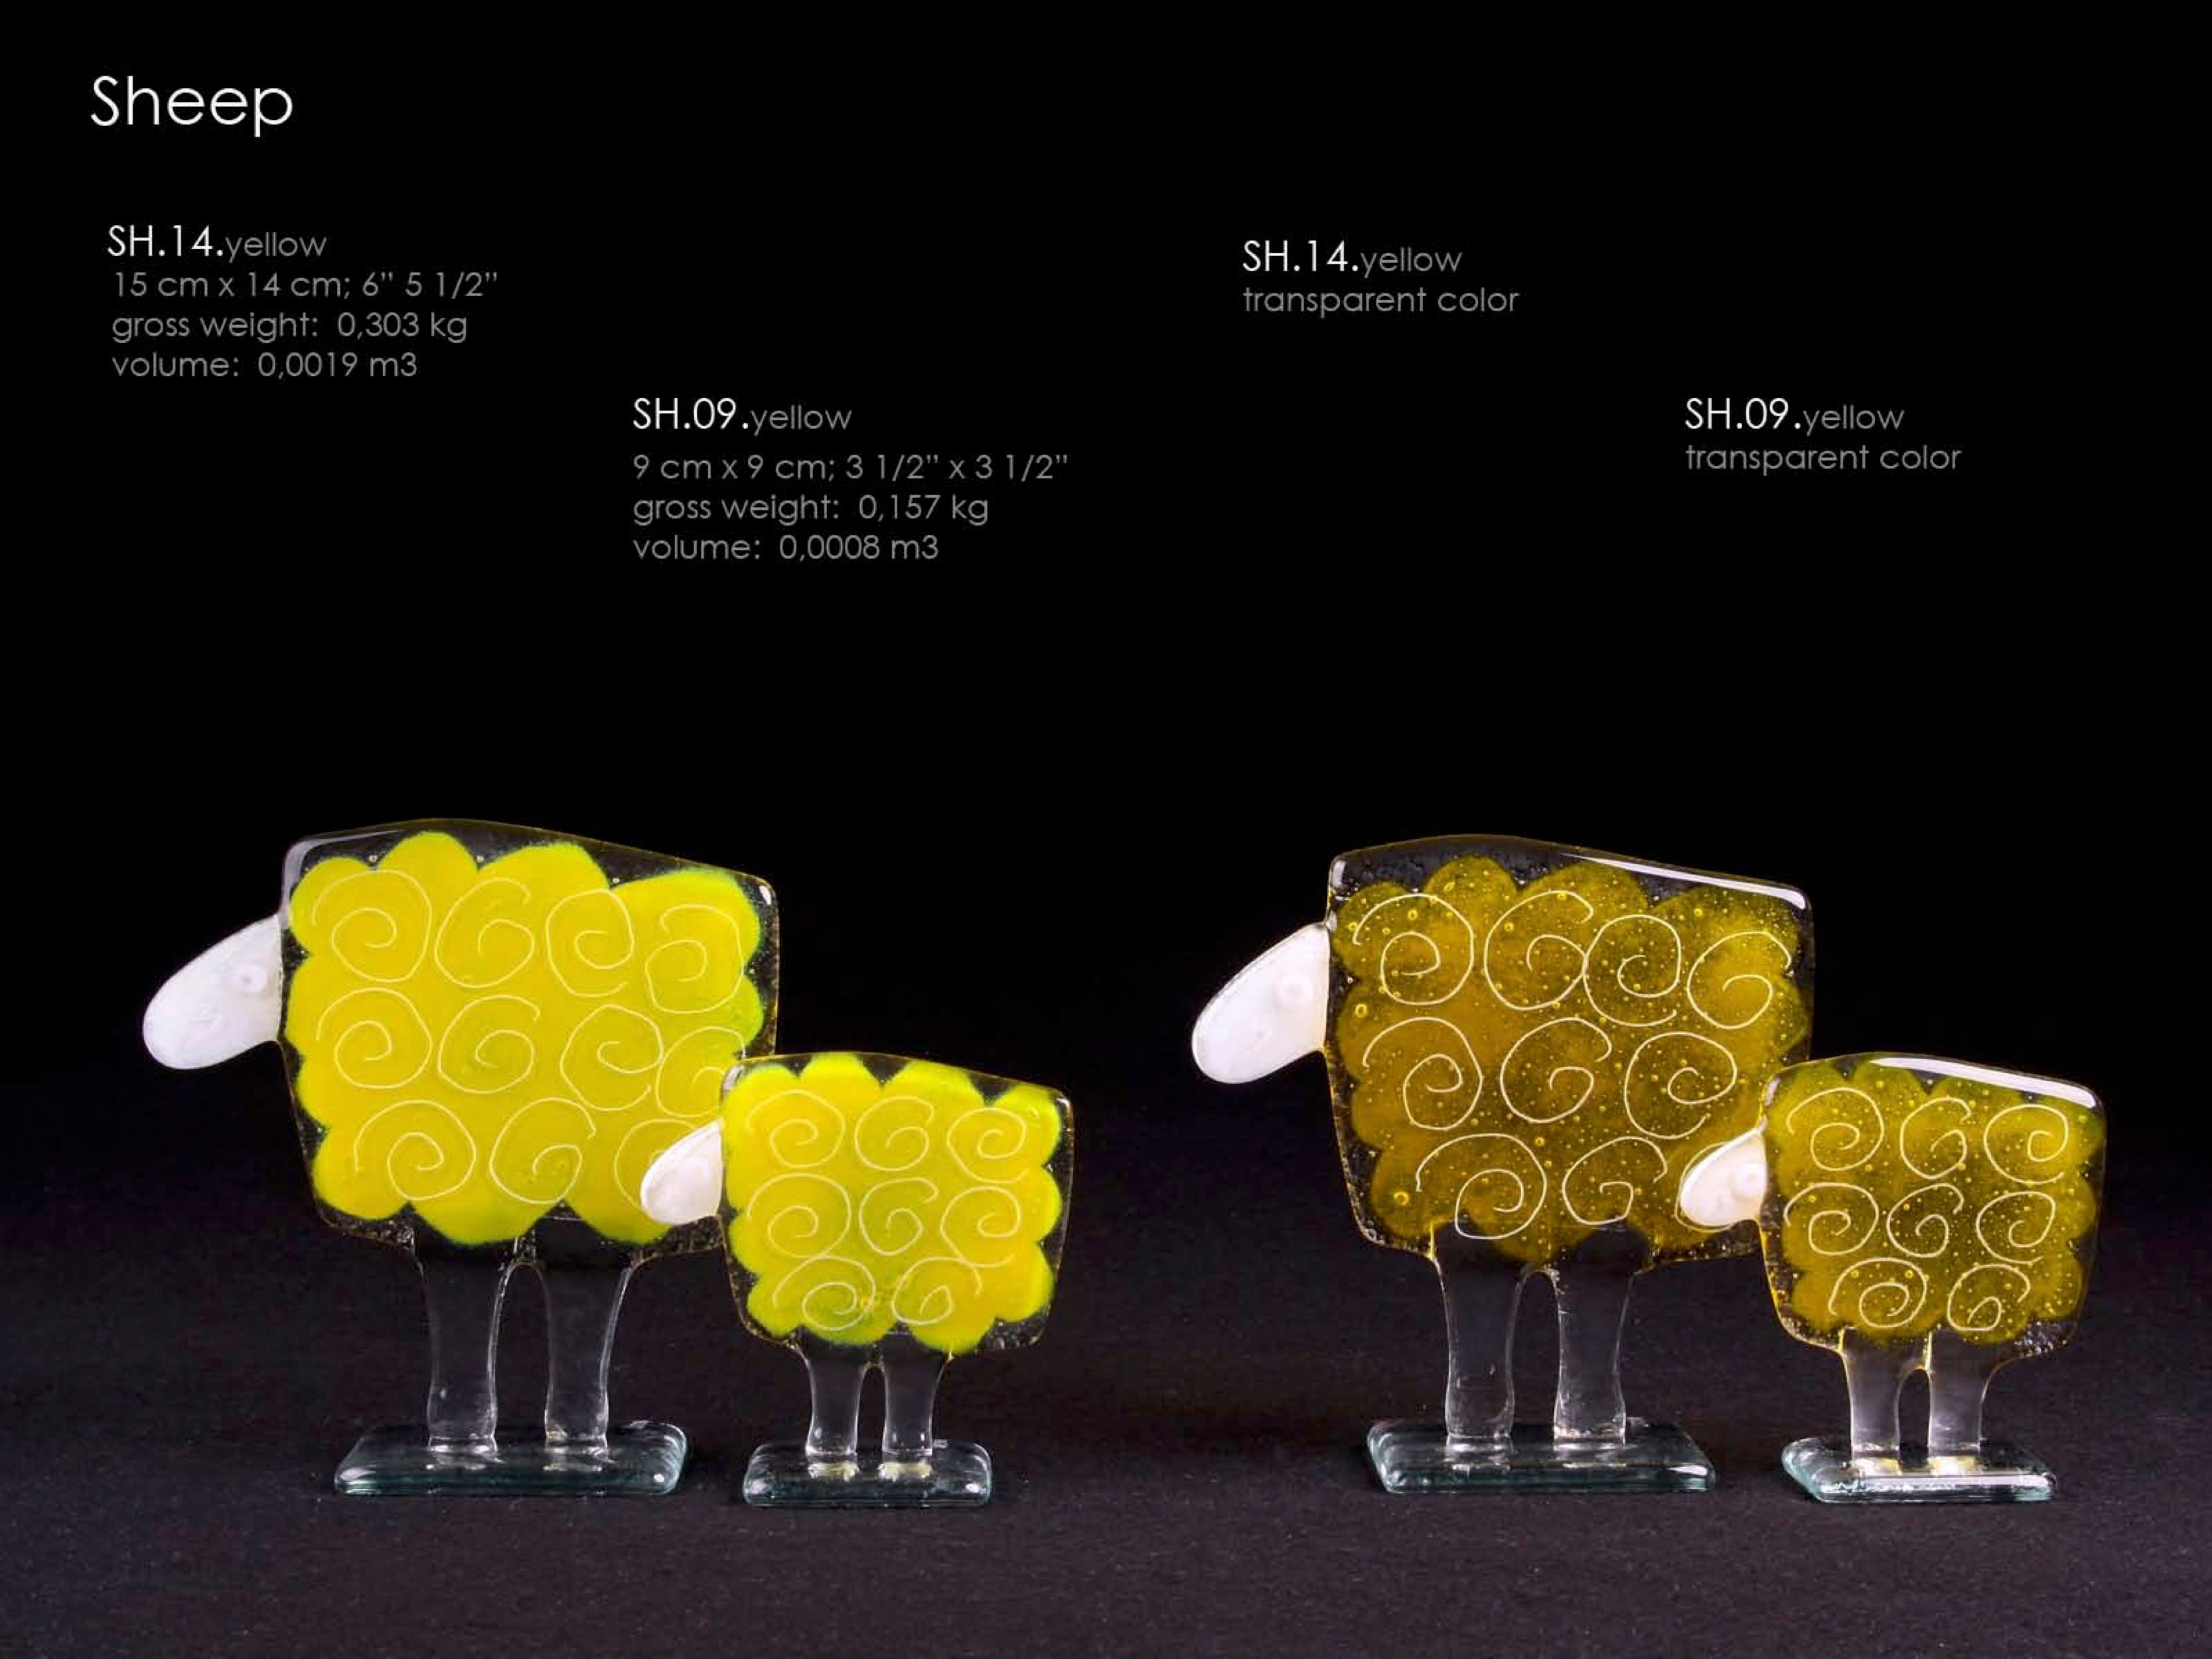 Sheep statue made from glass, available 2 sizes. Unique design. Perfect gift idea. Handcrafted glass studio.